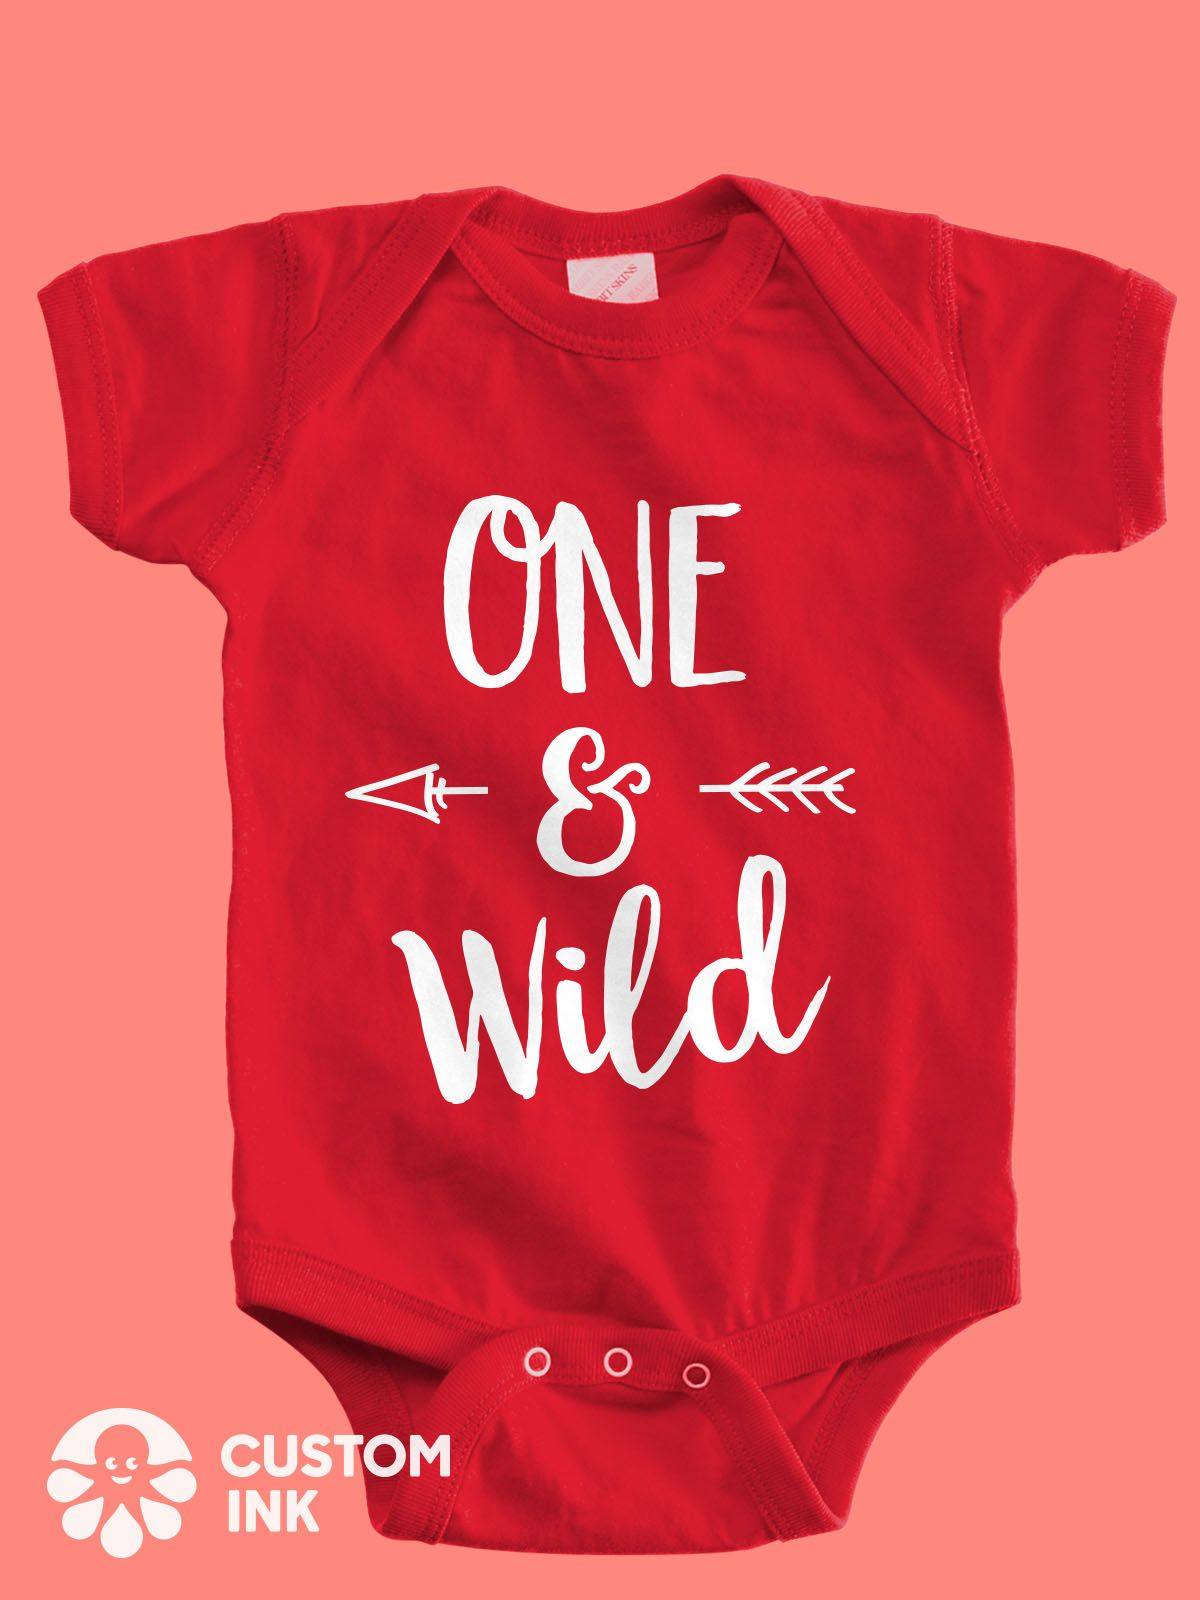 7e5bf8873e10 One Der Ful is the perfect cute saying design idea for a custom first  birthday party baby onesie, t-shirt, tank top, hoodie, tote bag, or more.